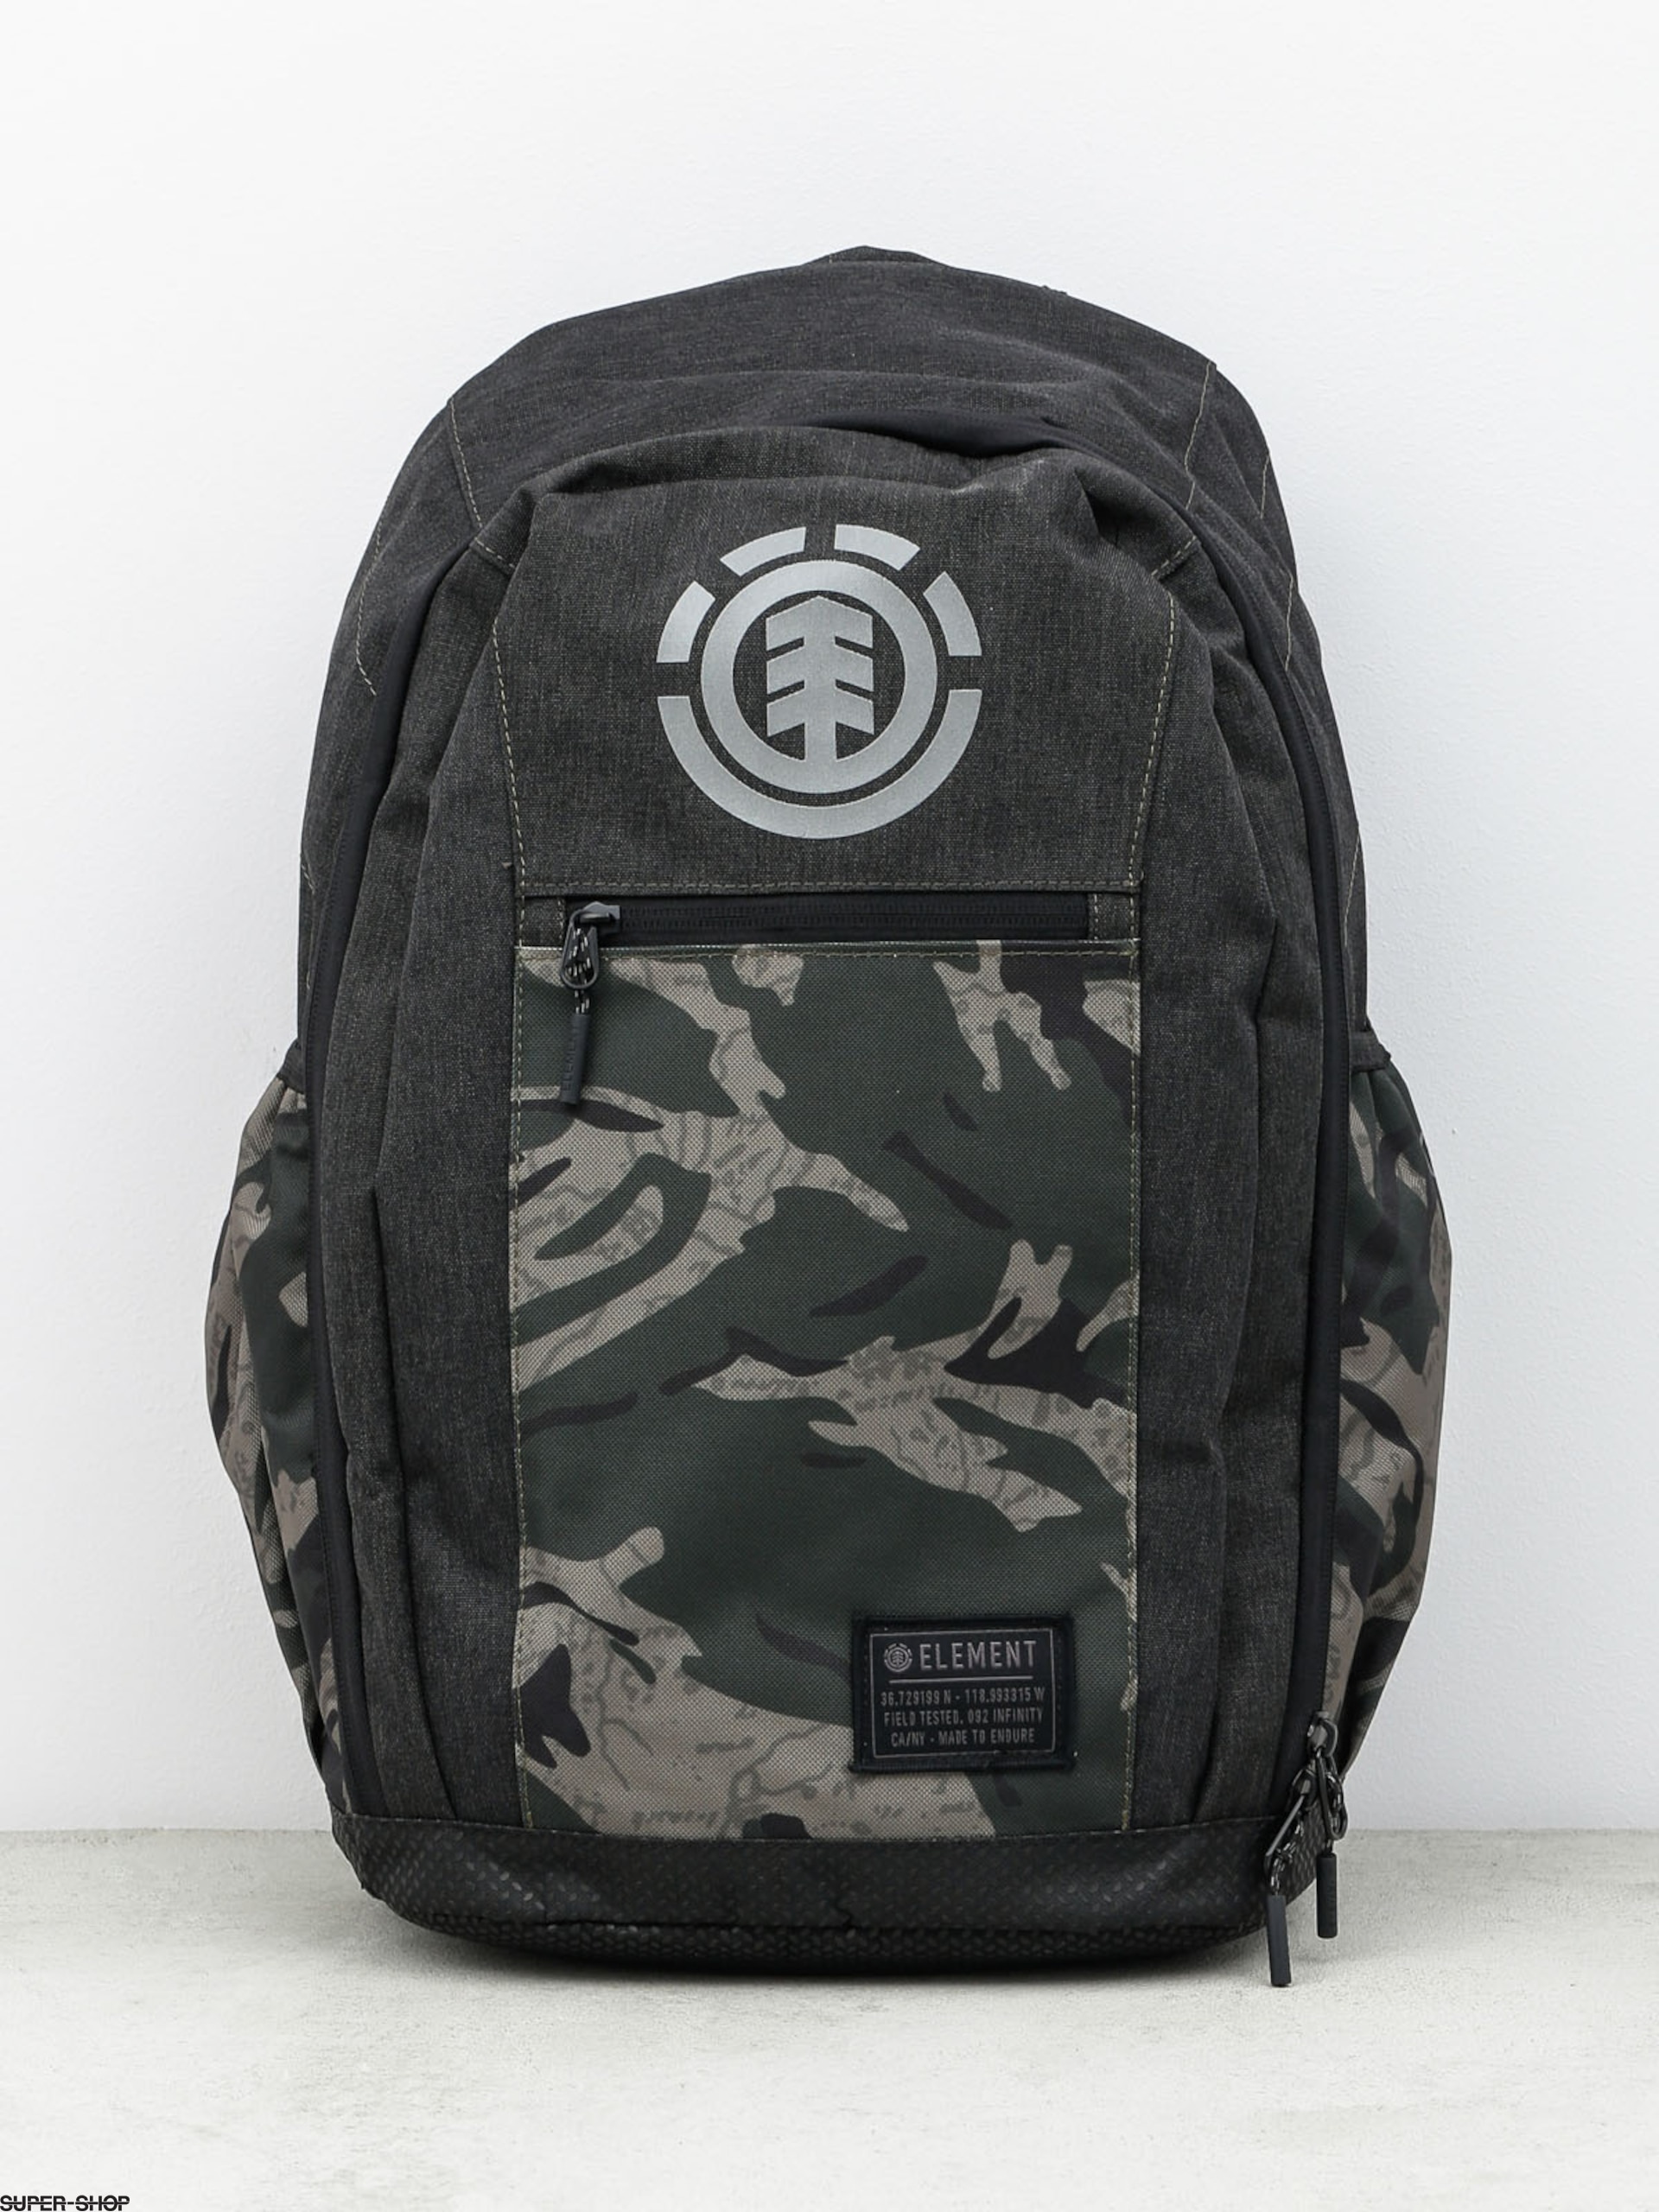 Element Backpack Sparker (map camo)